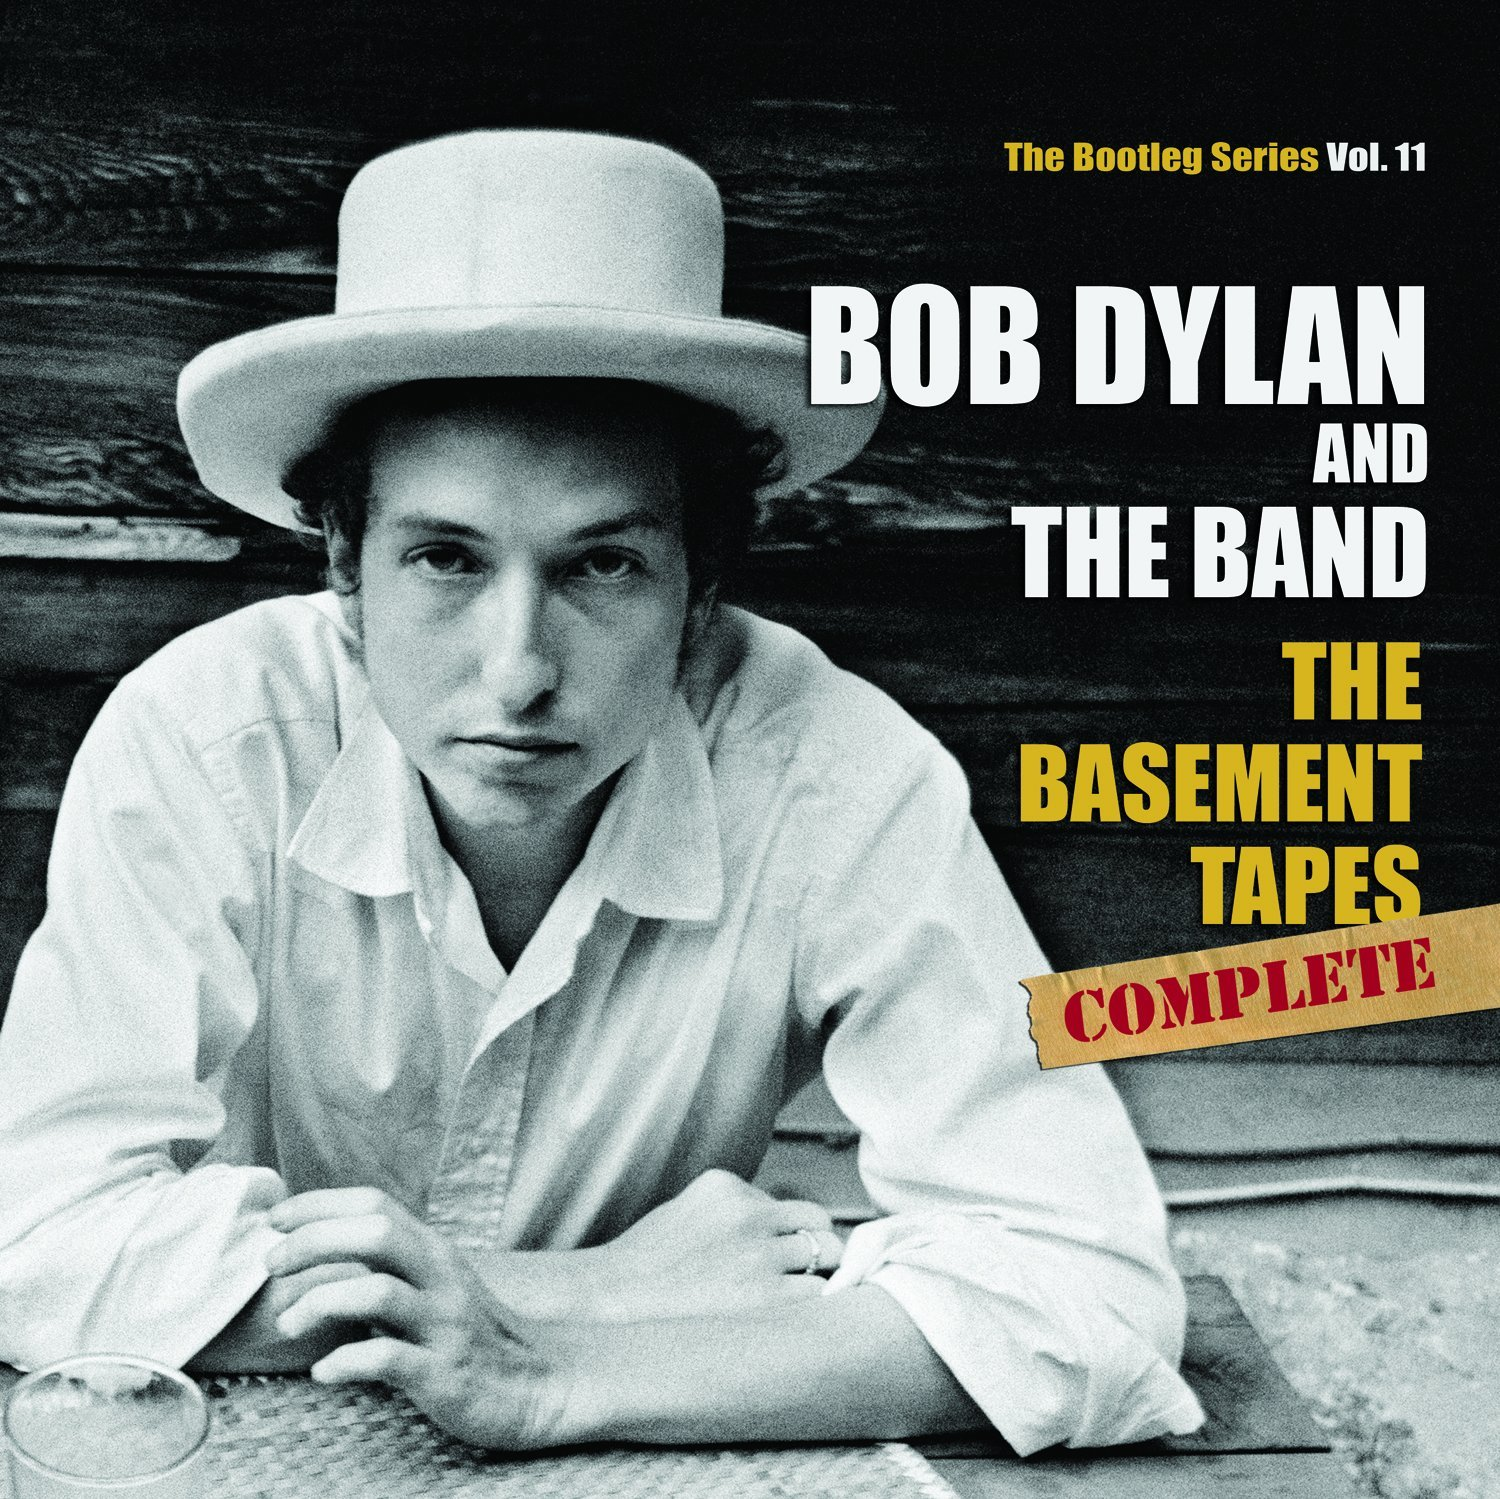 http://theseconddisc.com/2014/08/26/they-shall-be-released-bob-dylan-and-the-bands-the-basement-tapes-complete-arrives-in-november/